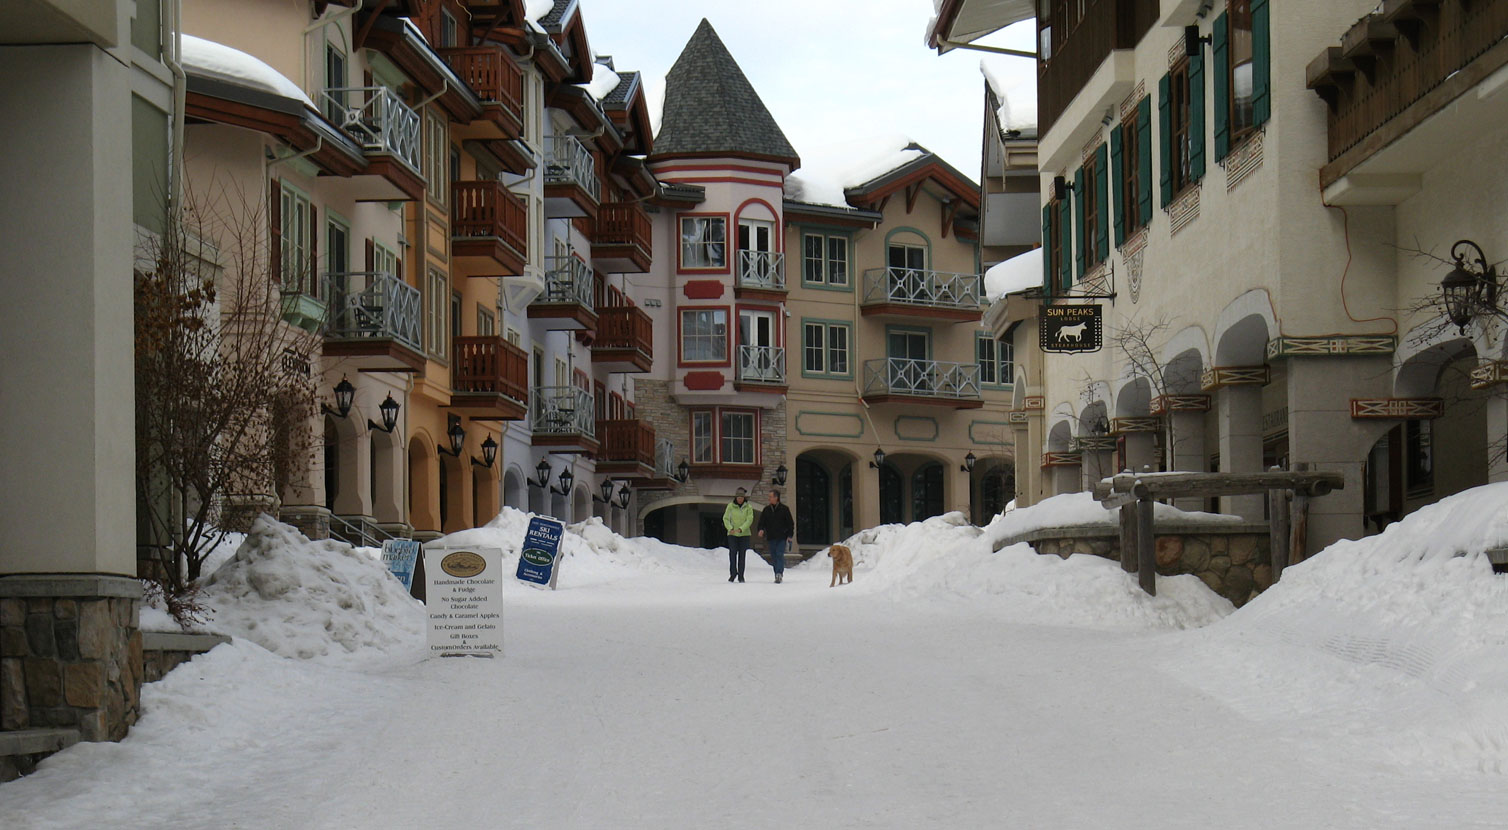 Sun Peaks Resort village in the winter